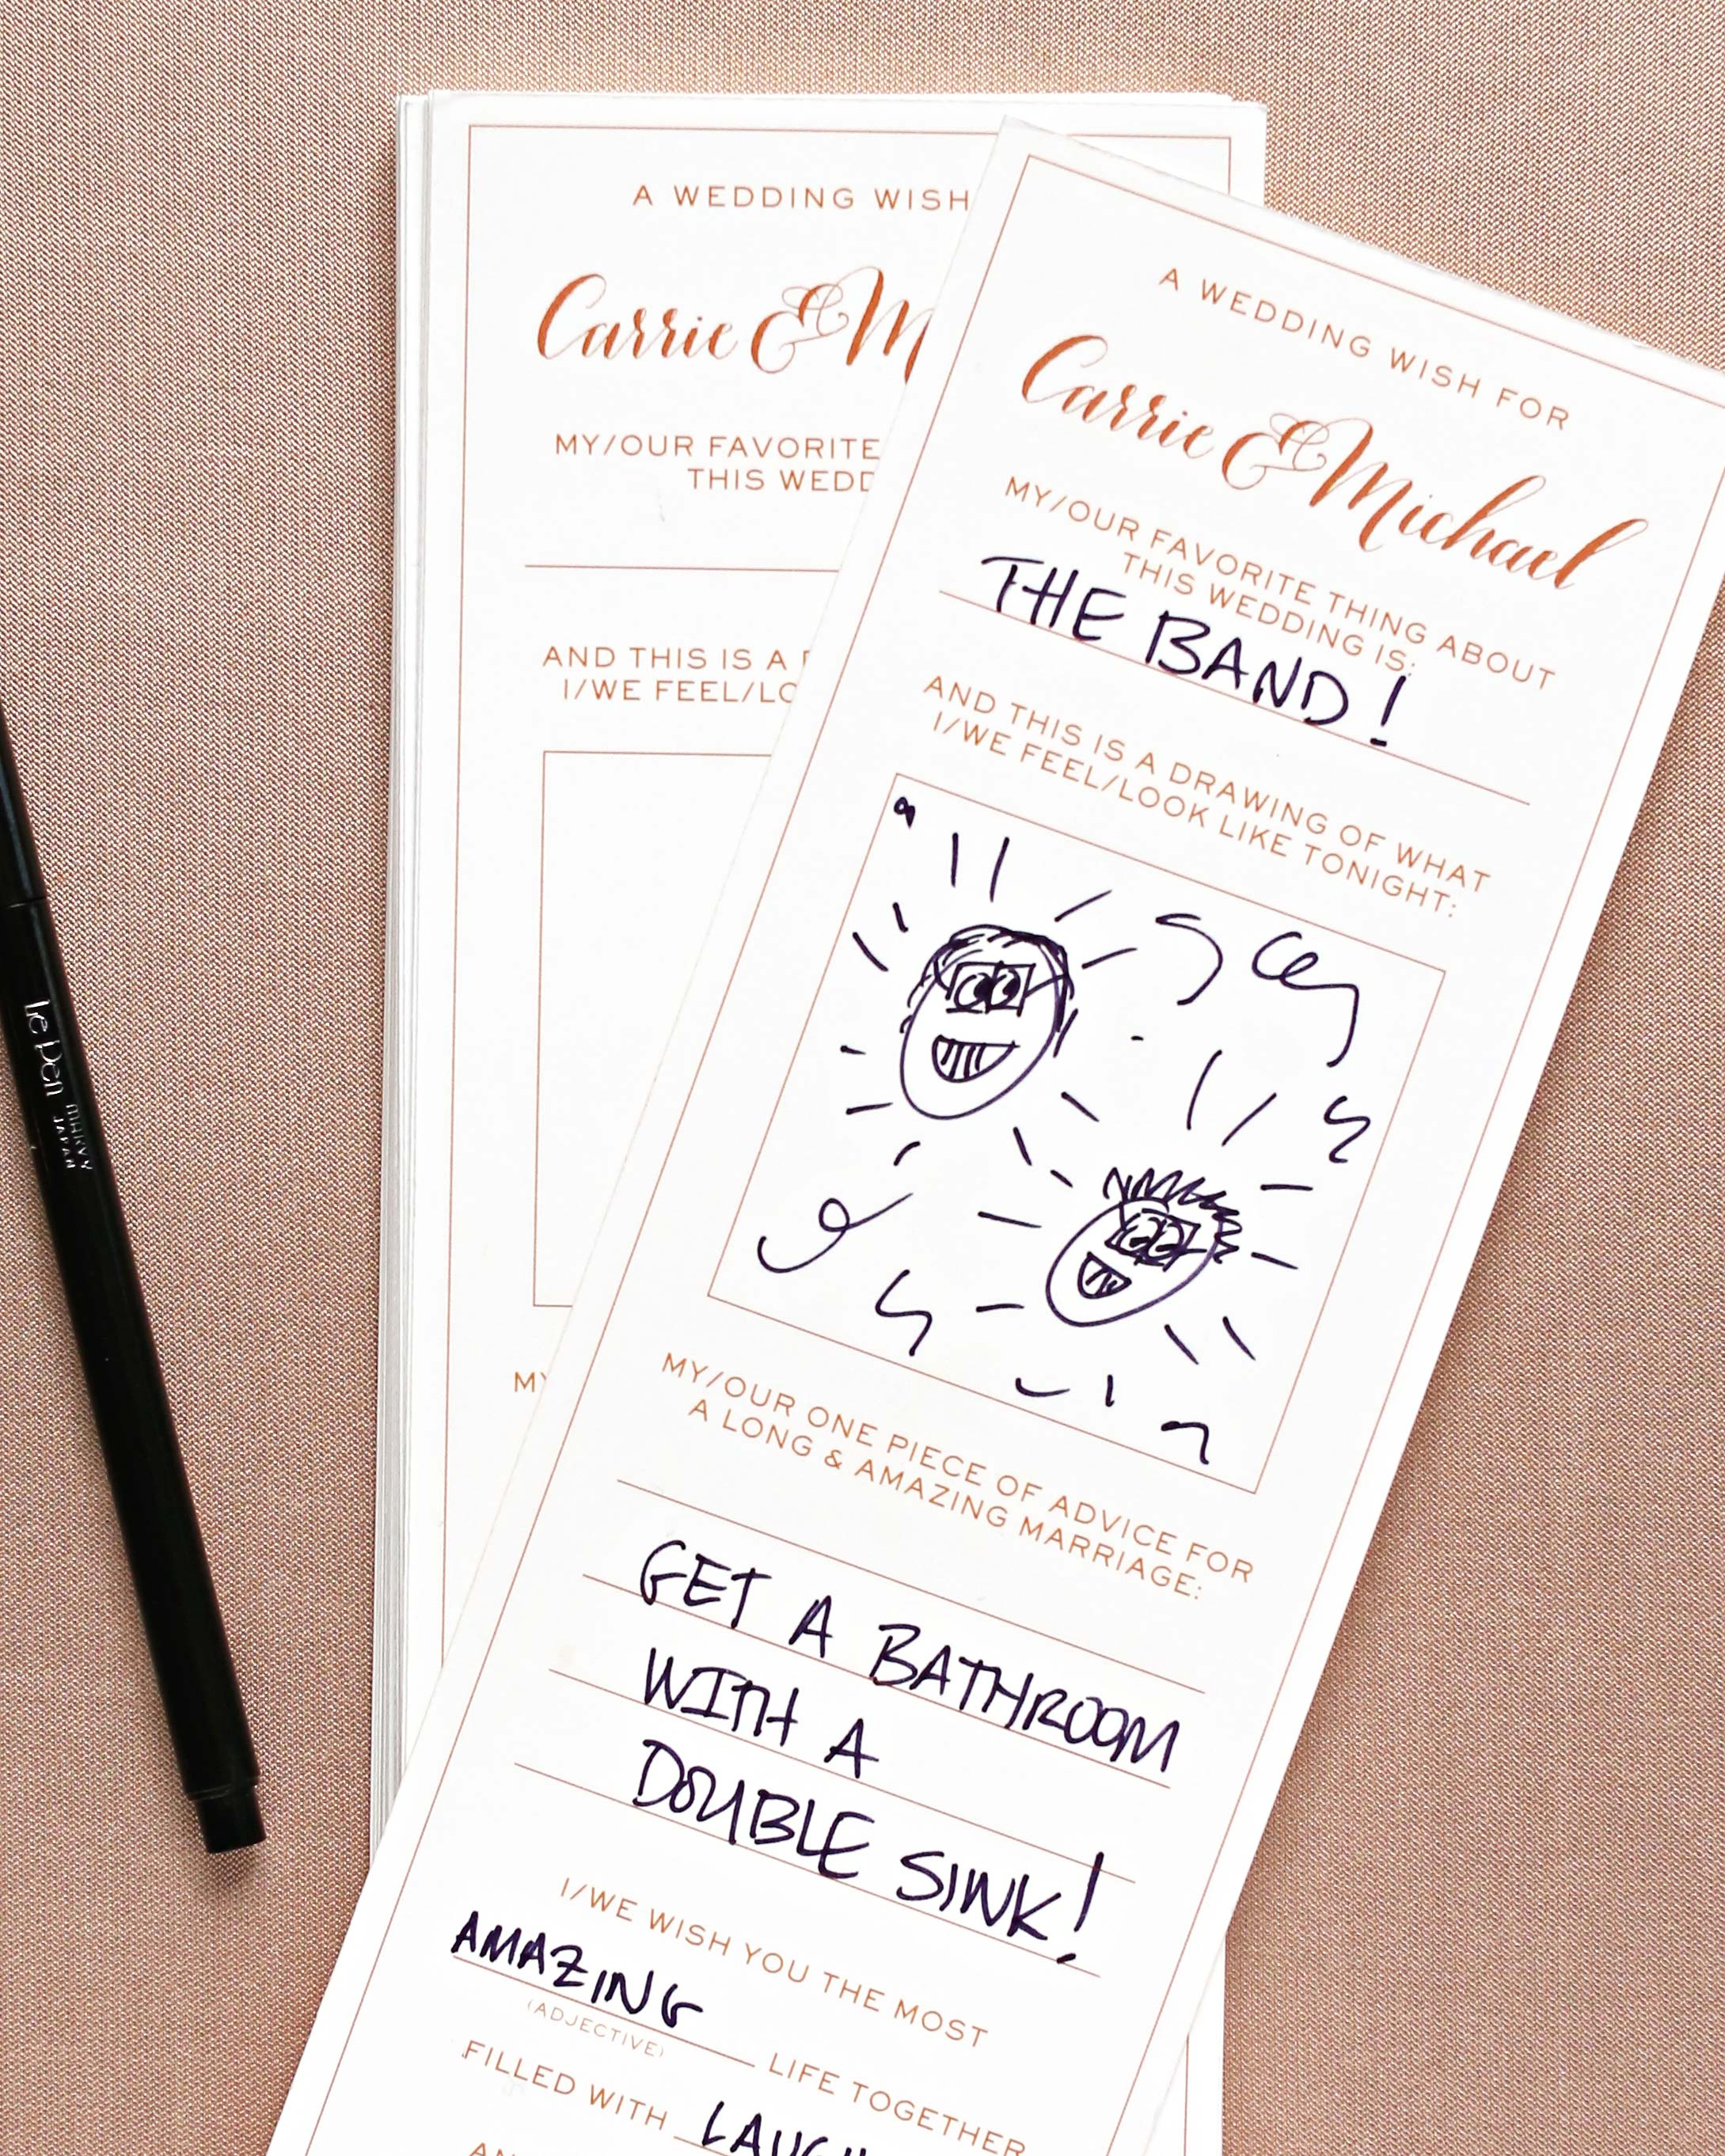 46 Guest Books From Real Weddings Martha